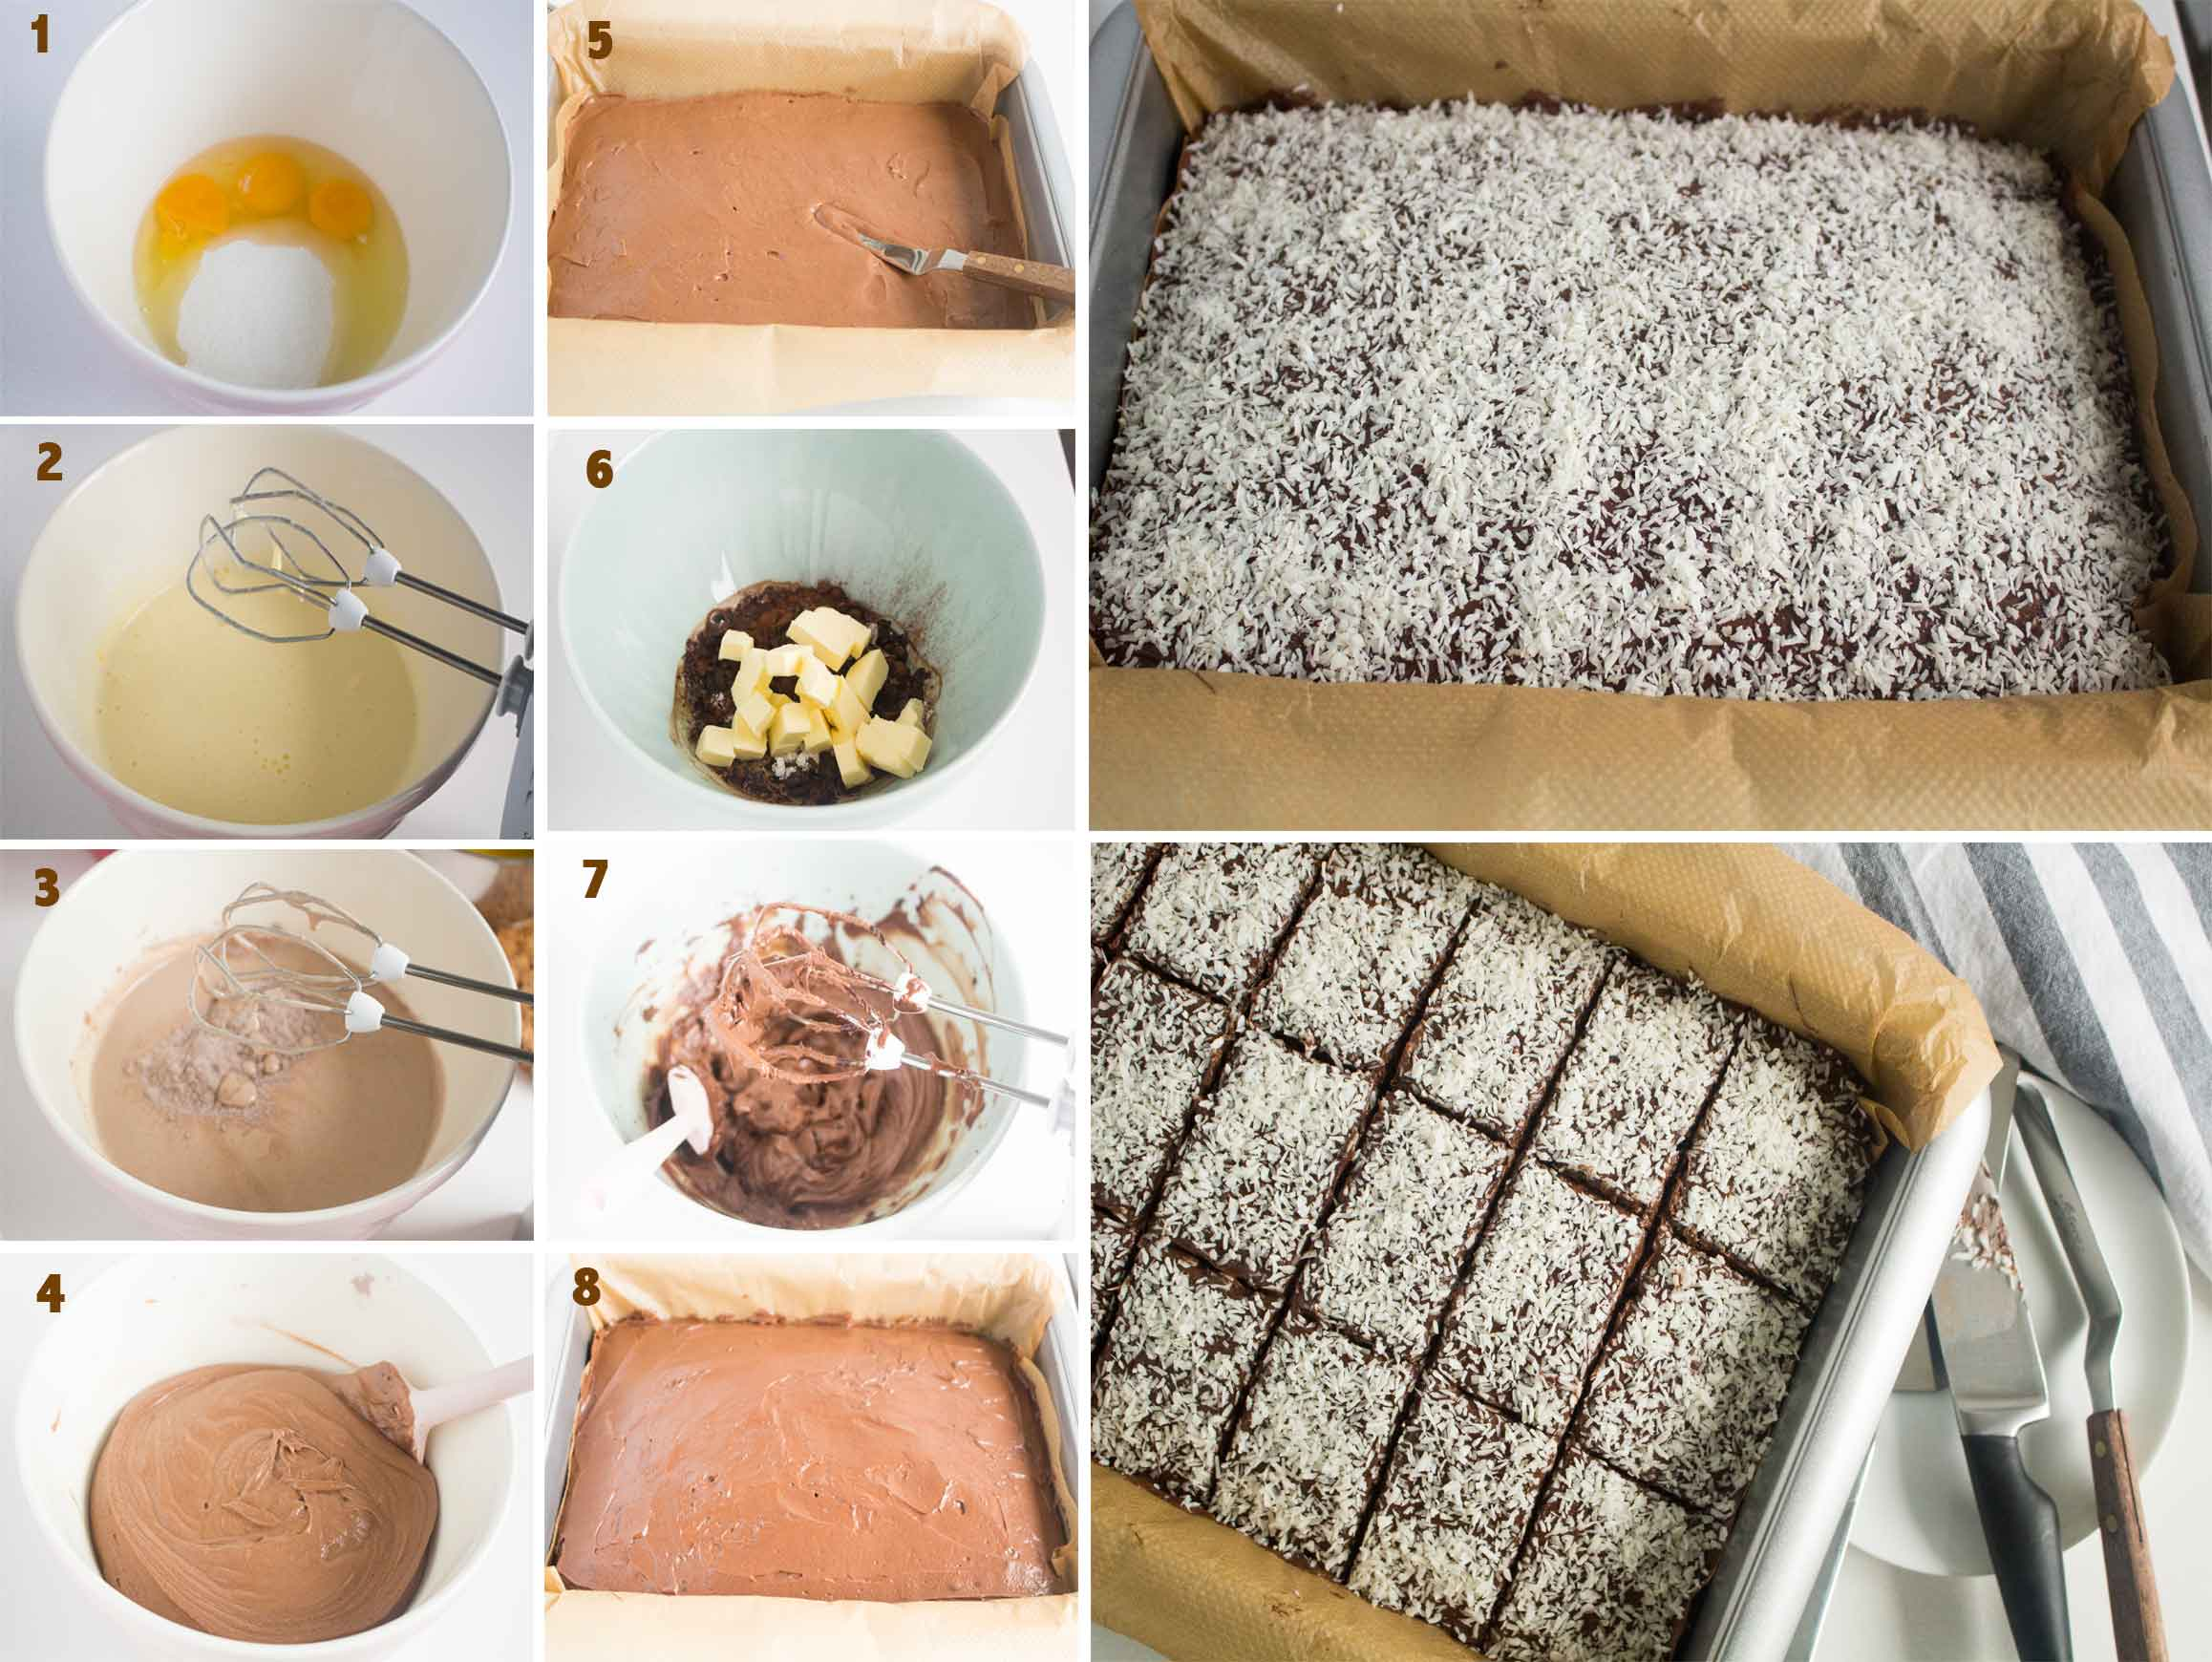 Collage of images showing the steps to make Swedish Chocolate Coffee Squares.